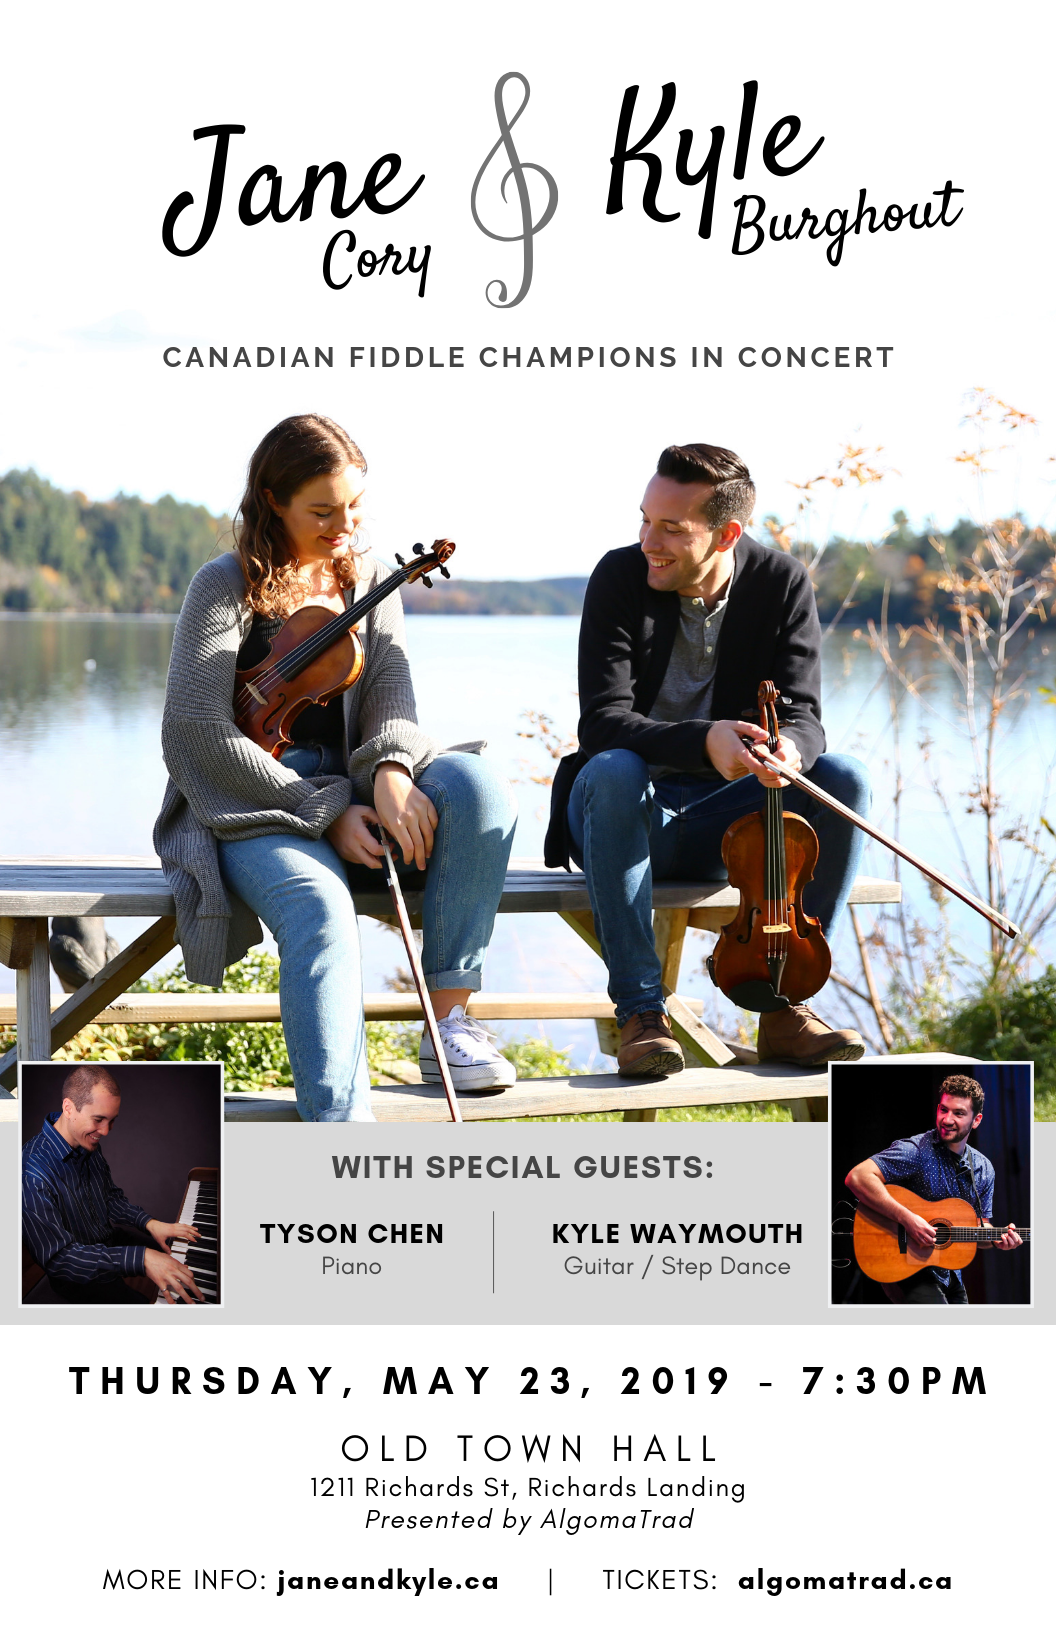 Jane Cory and Kyle Burghout in Concert